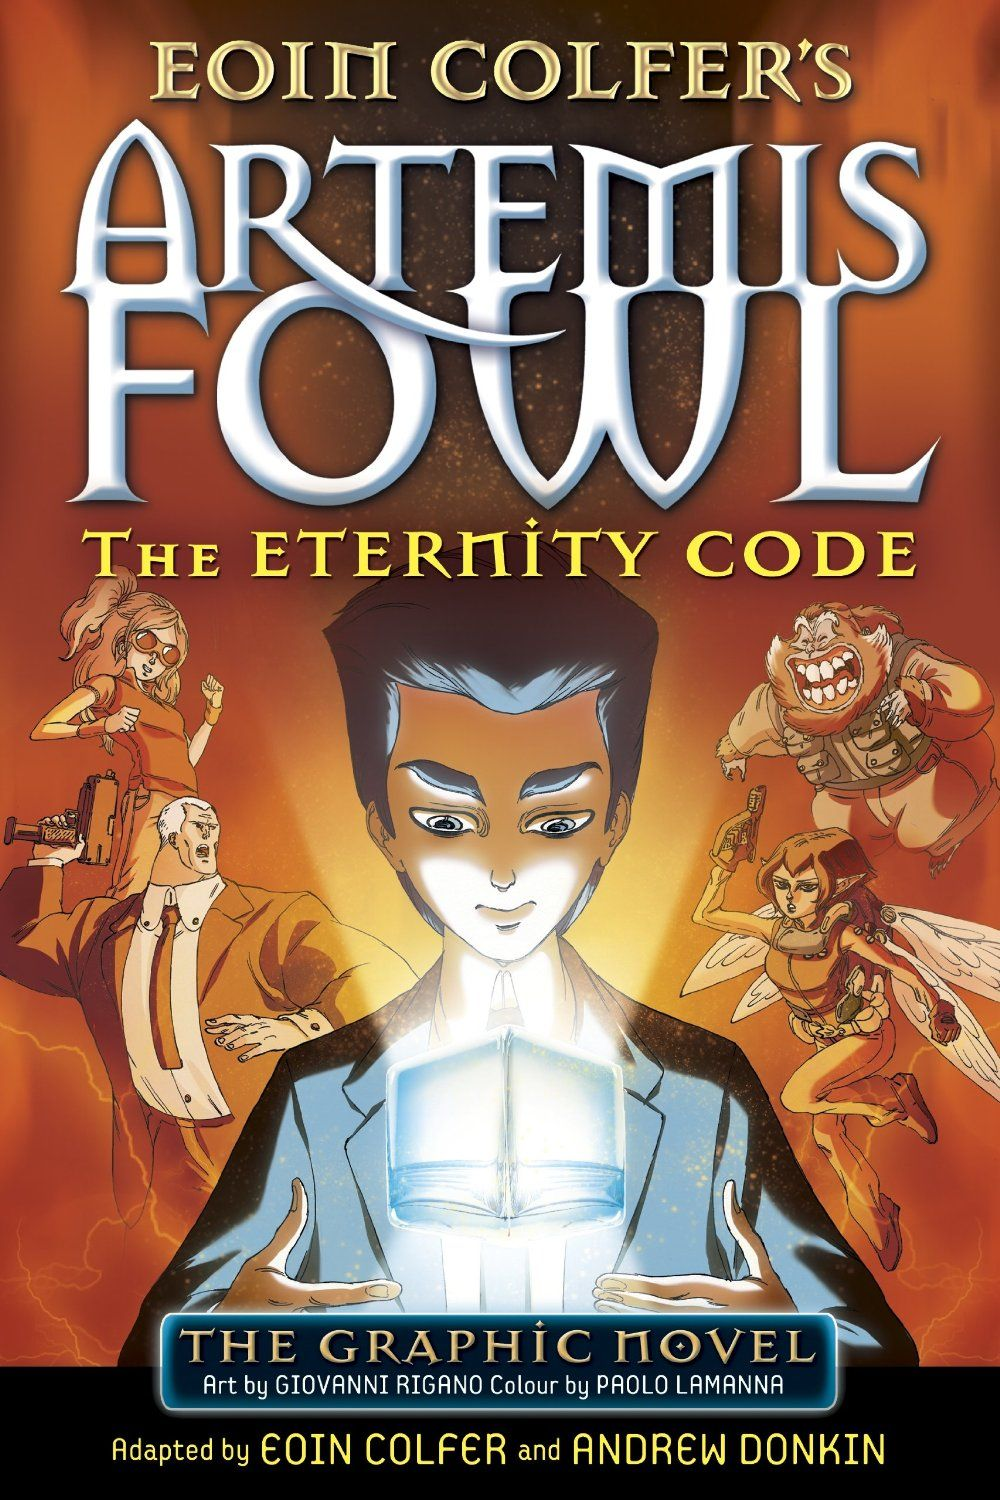 Cover To The Puffin Uk Edition Of The Third Artemis Fowl Graphic Novel   The Eternity